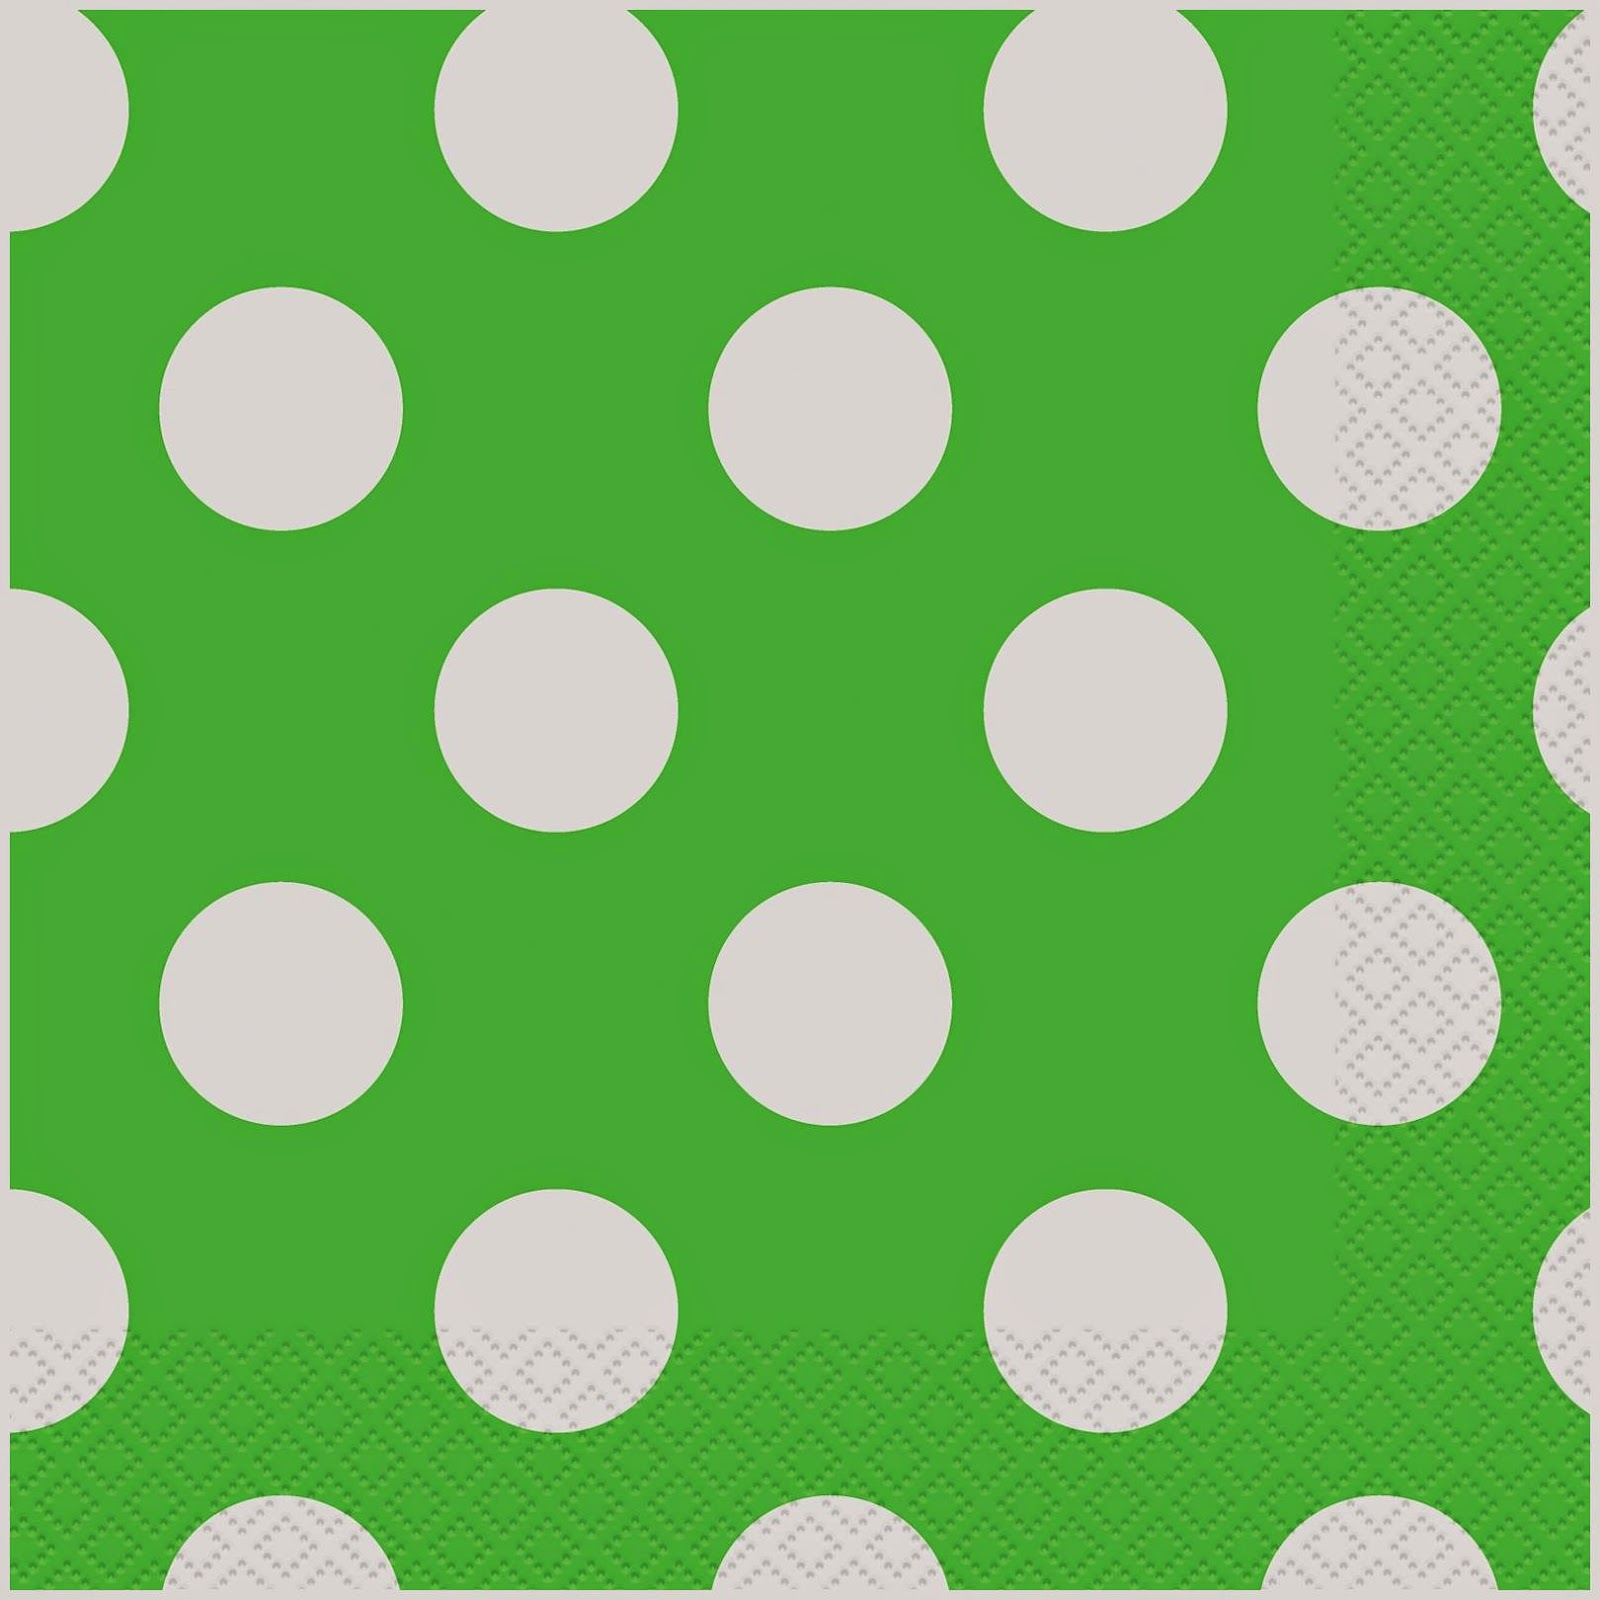 Green Polka Dot Napkin